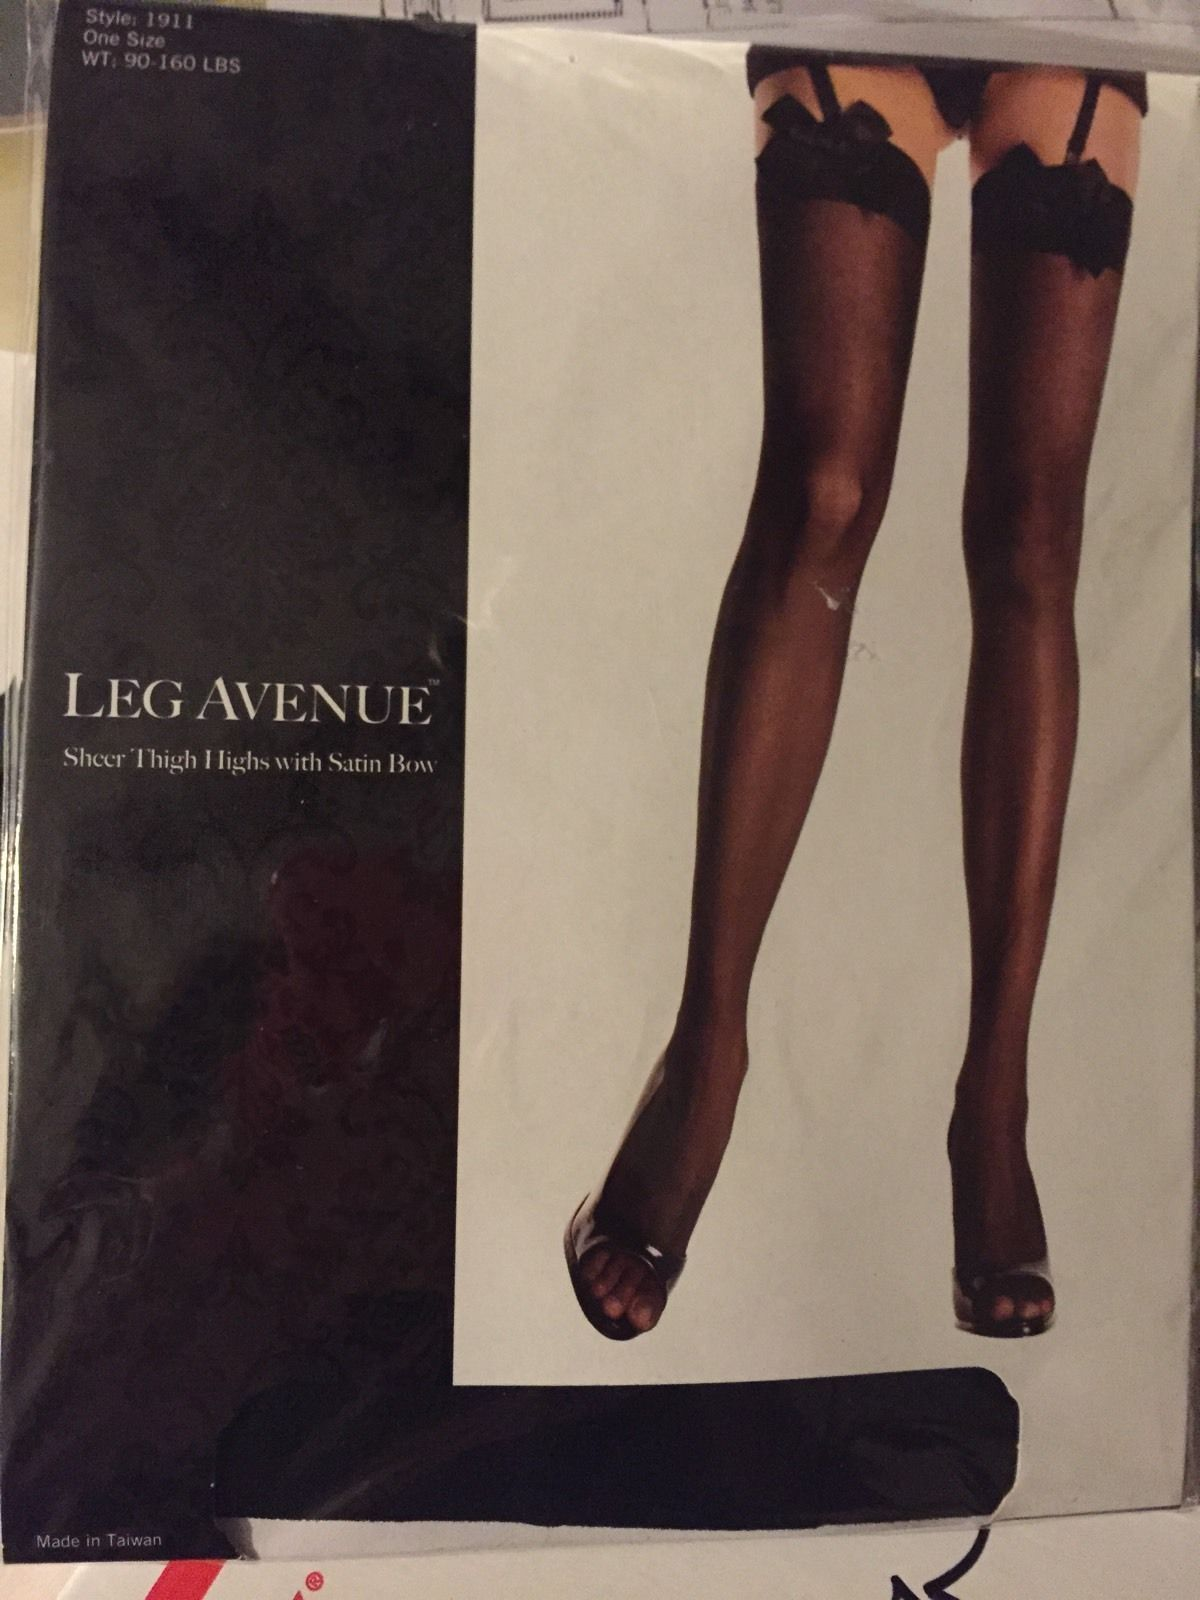 New Leg Avenue 1911 Sheer Thigh High Stockings With Satin Bow